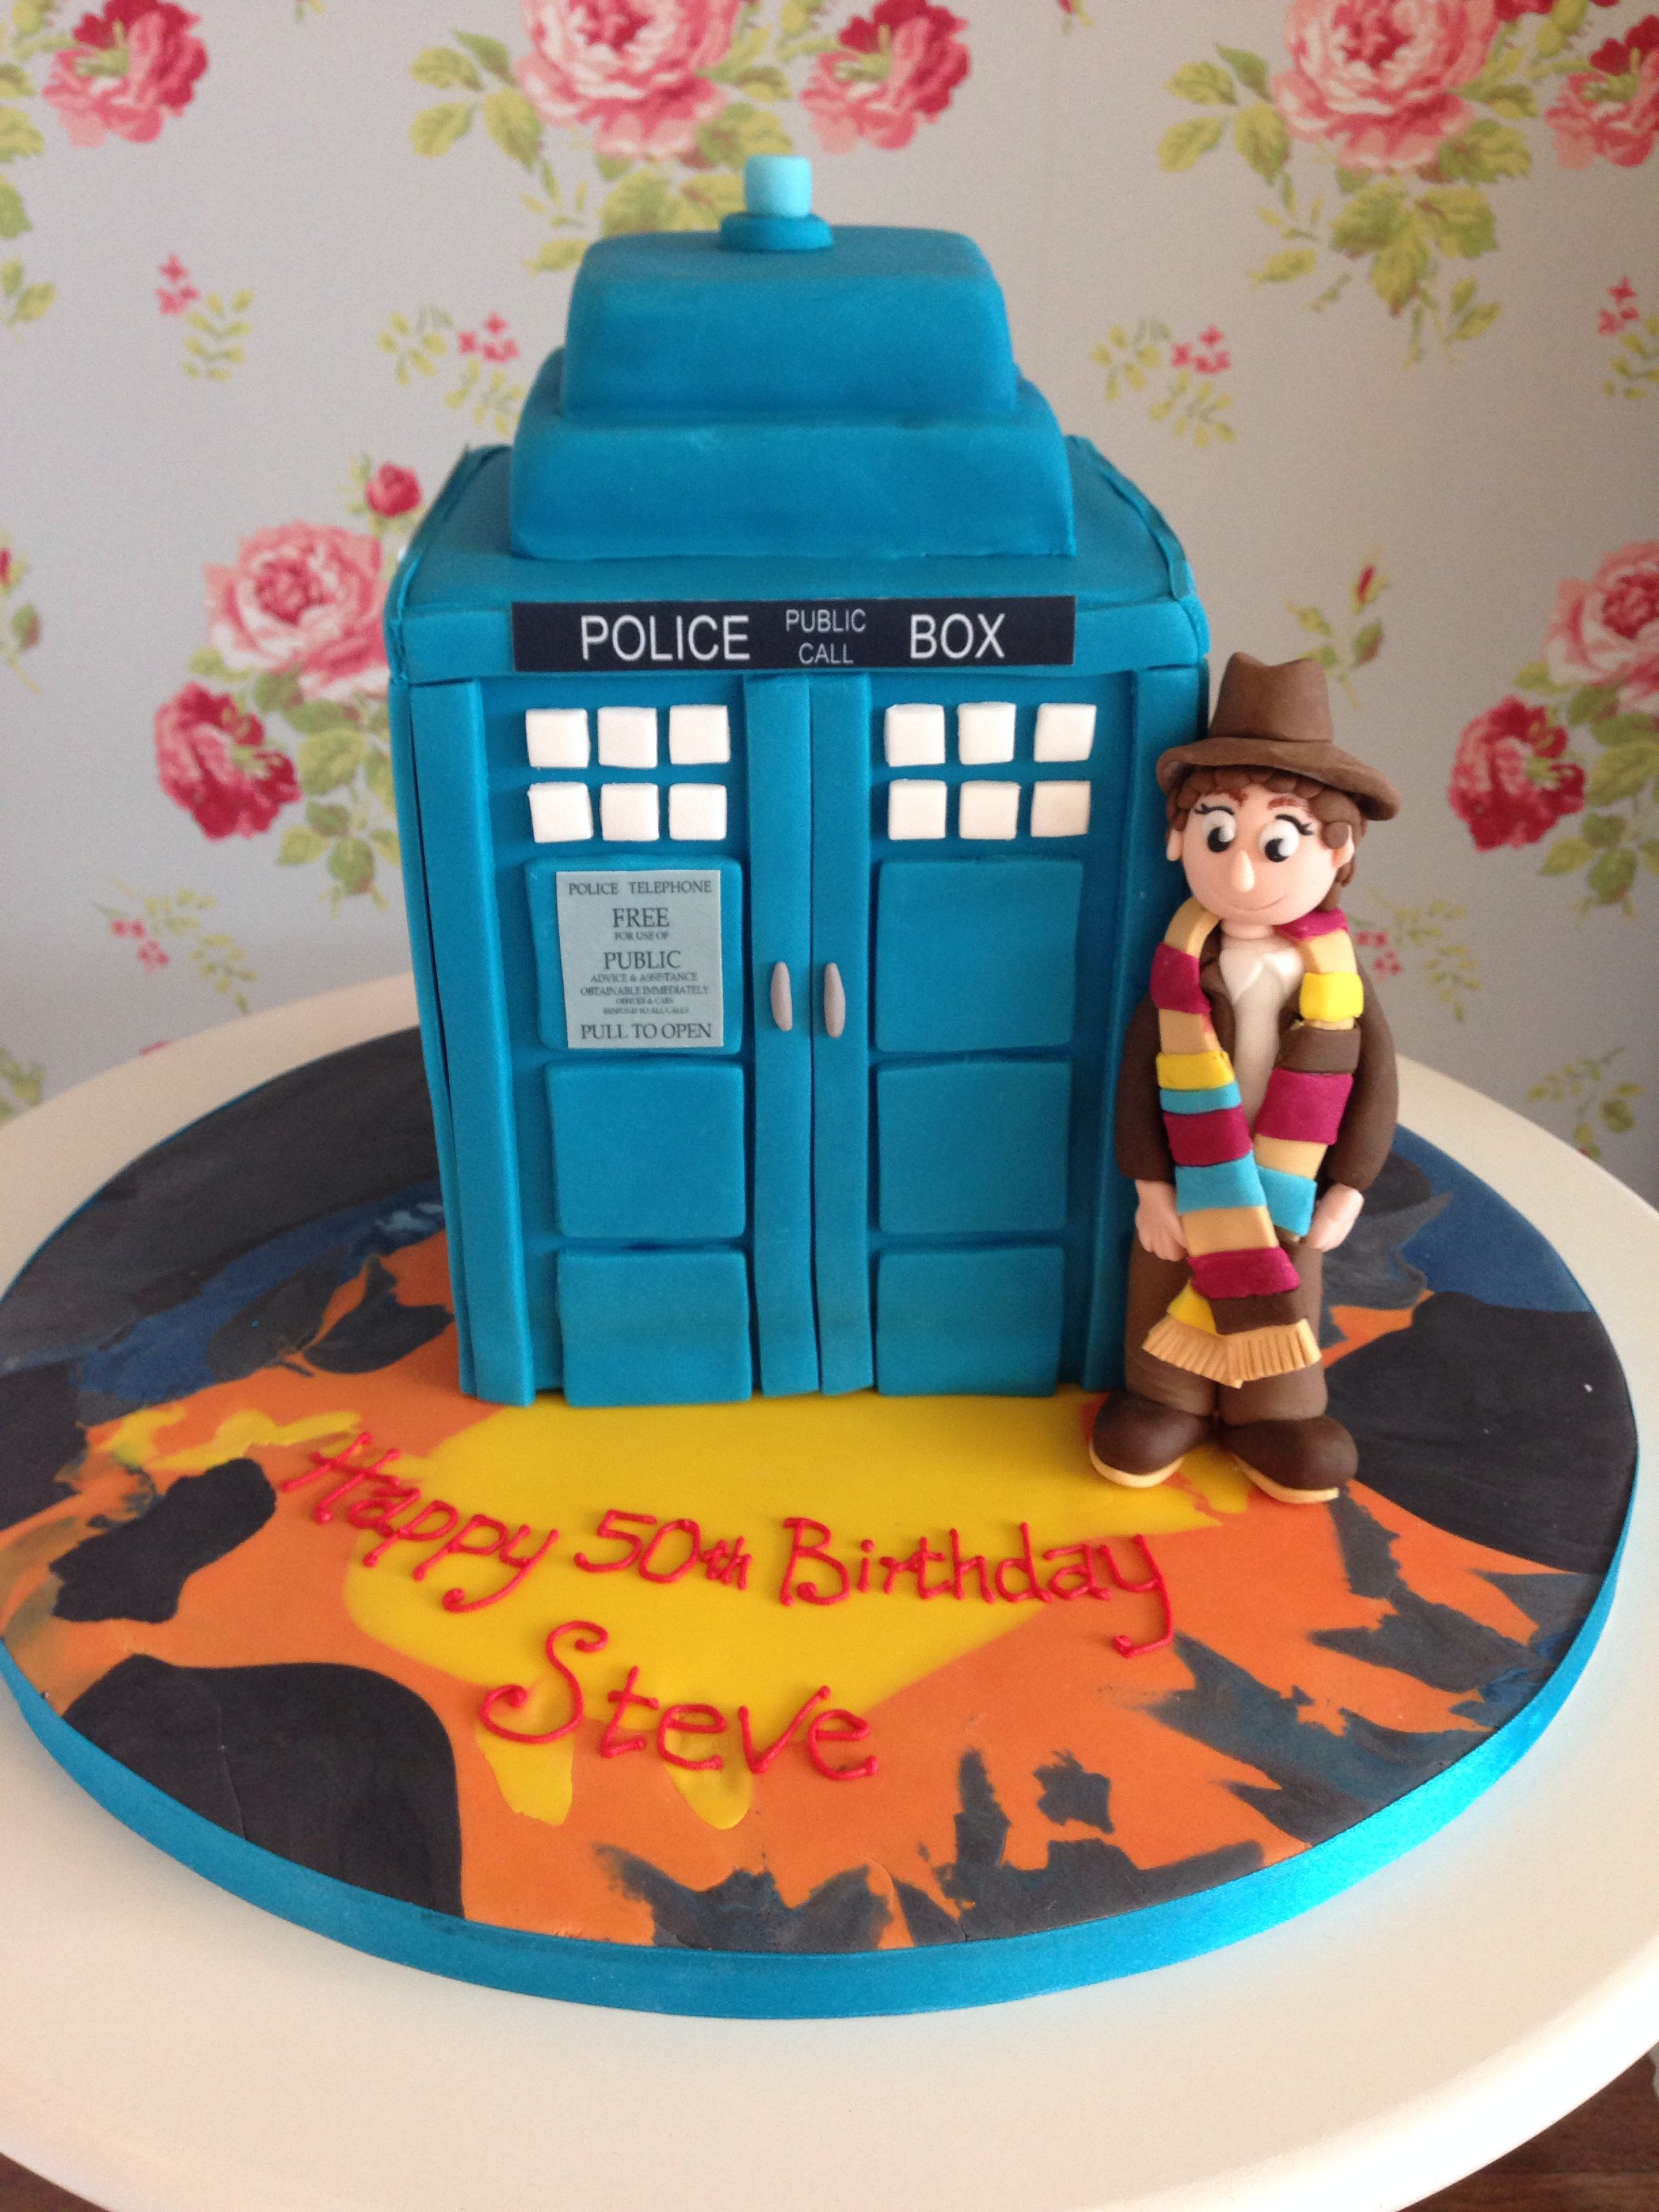 Groovy Doctor Who Cake Tom Baker Doctor Who Cakes Baker Cake Fancy Cakes Funny Birthday Cards Online Inifofree Goldxyz